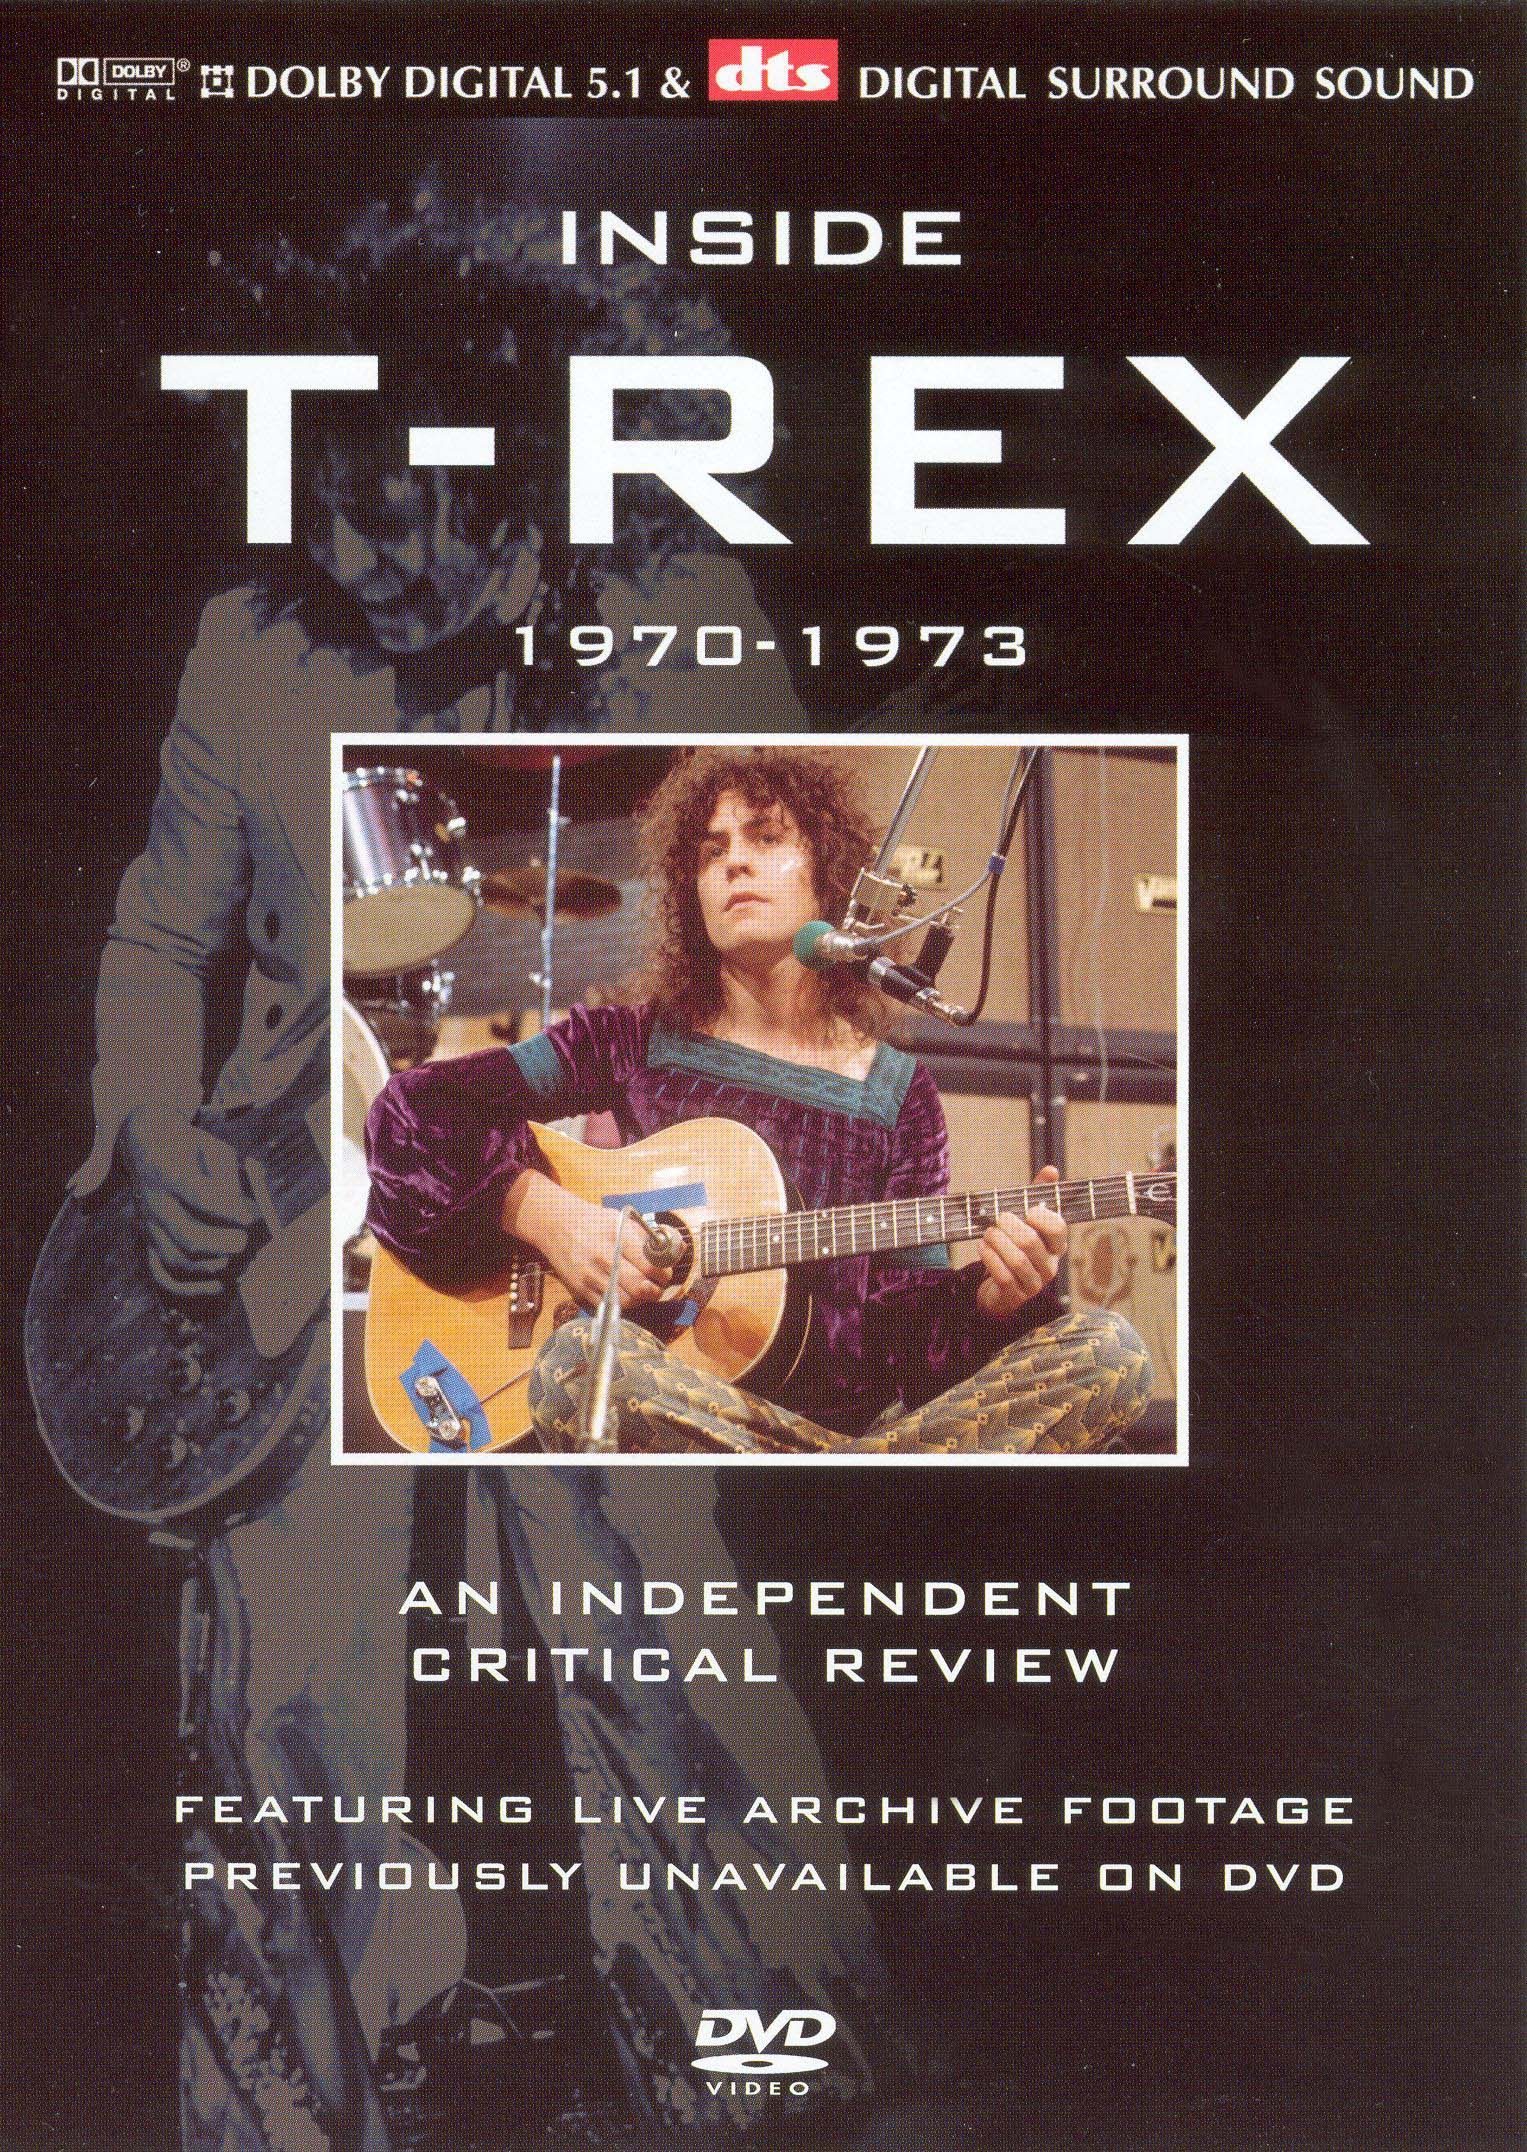 Inside T-Rex: A Critical Review 1970-1973